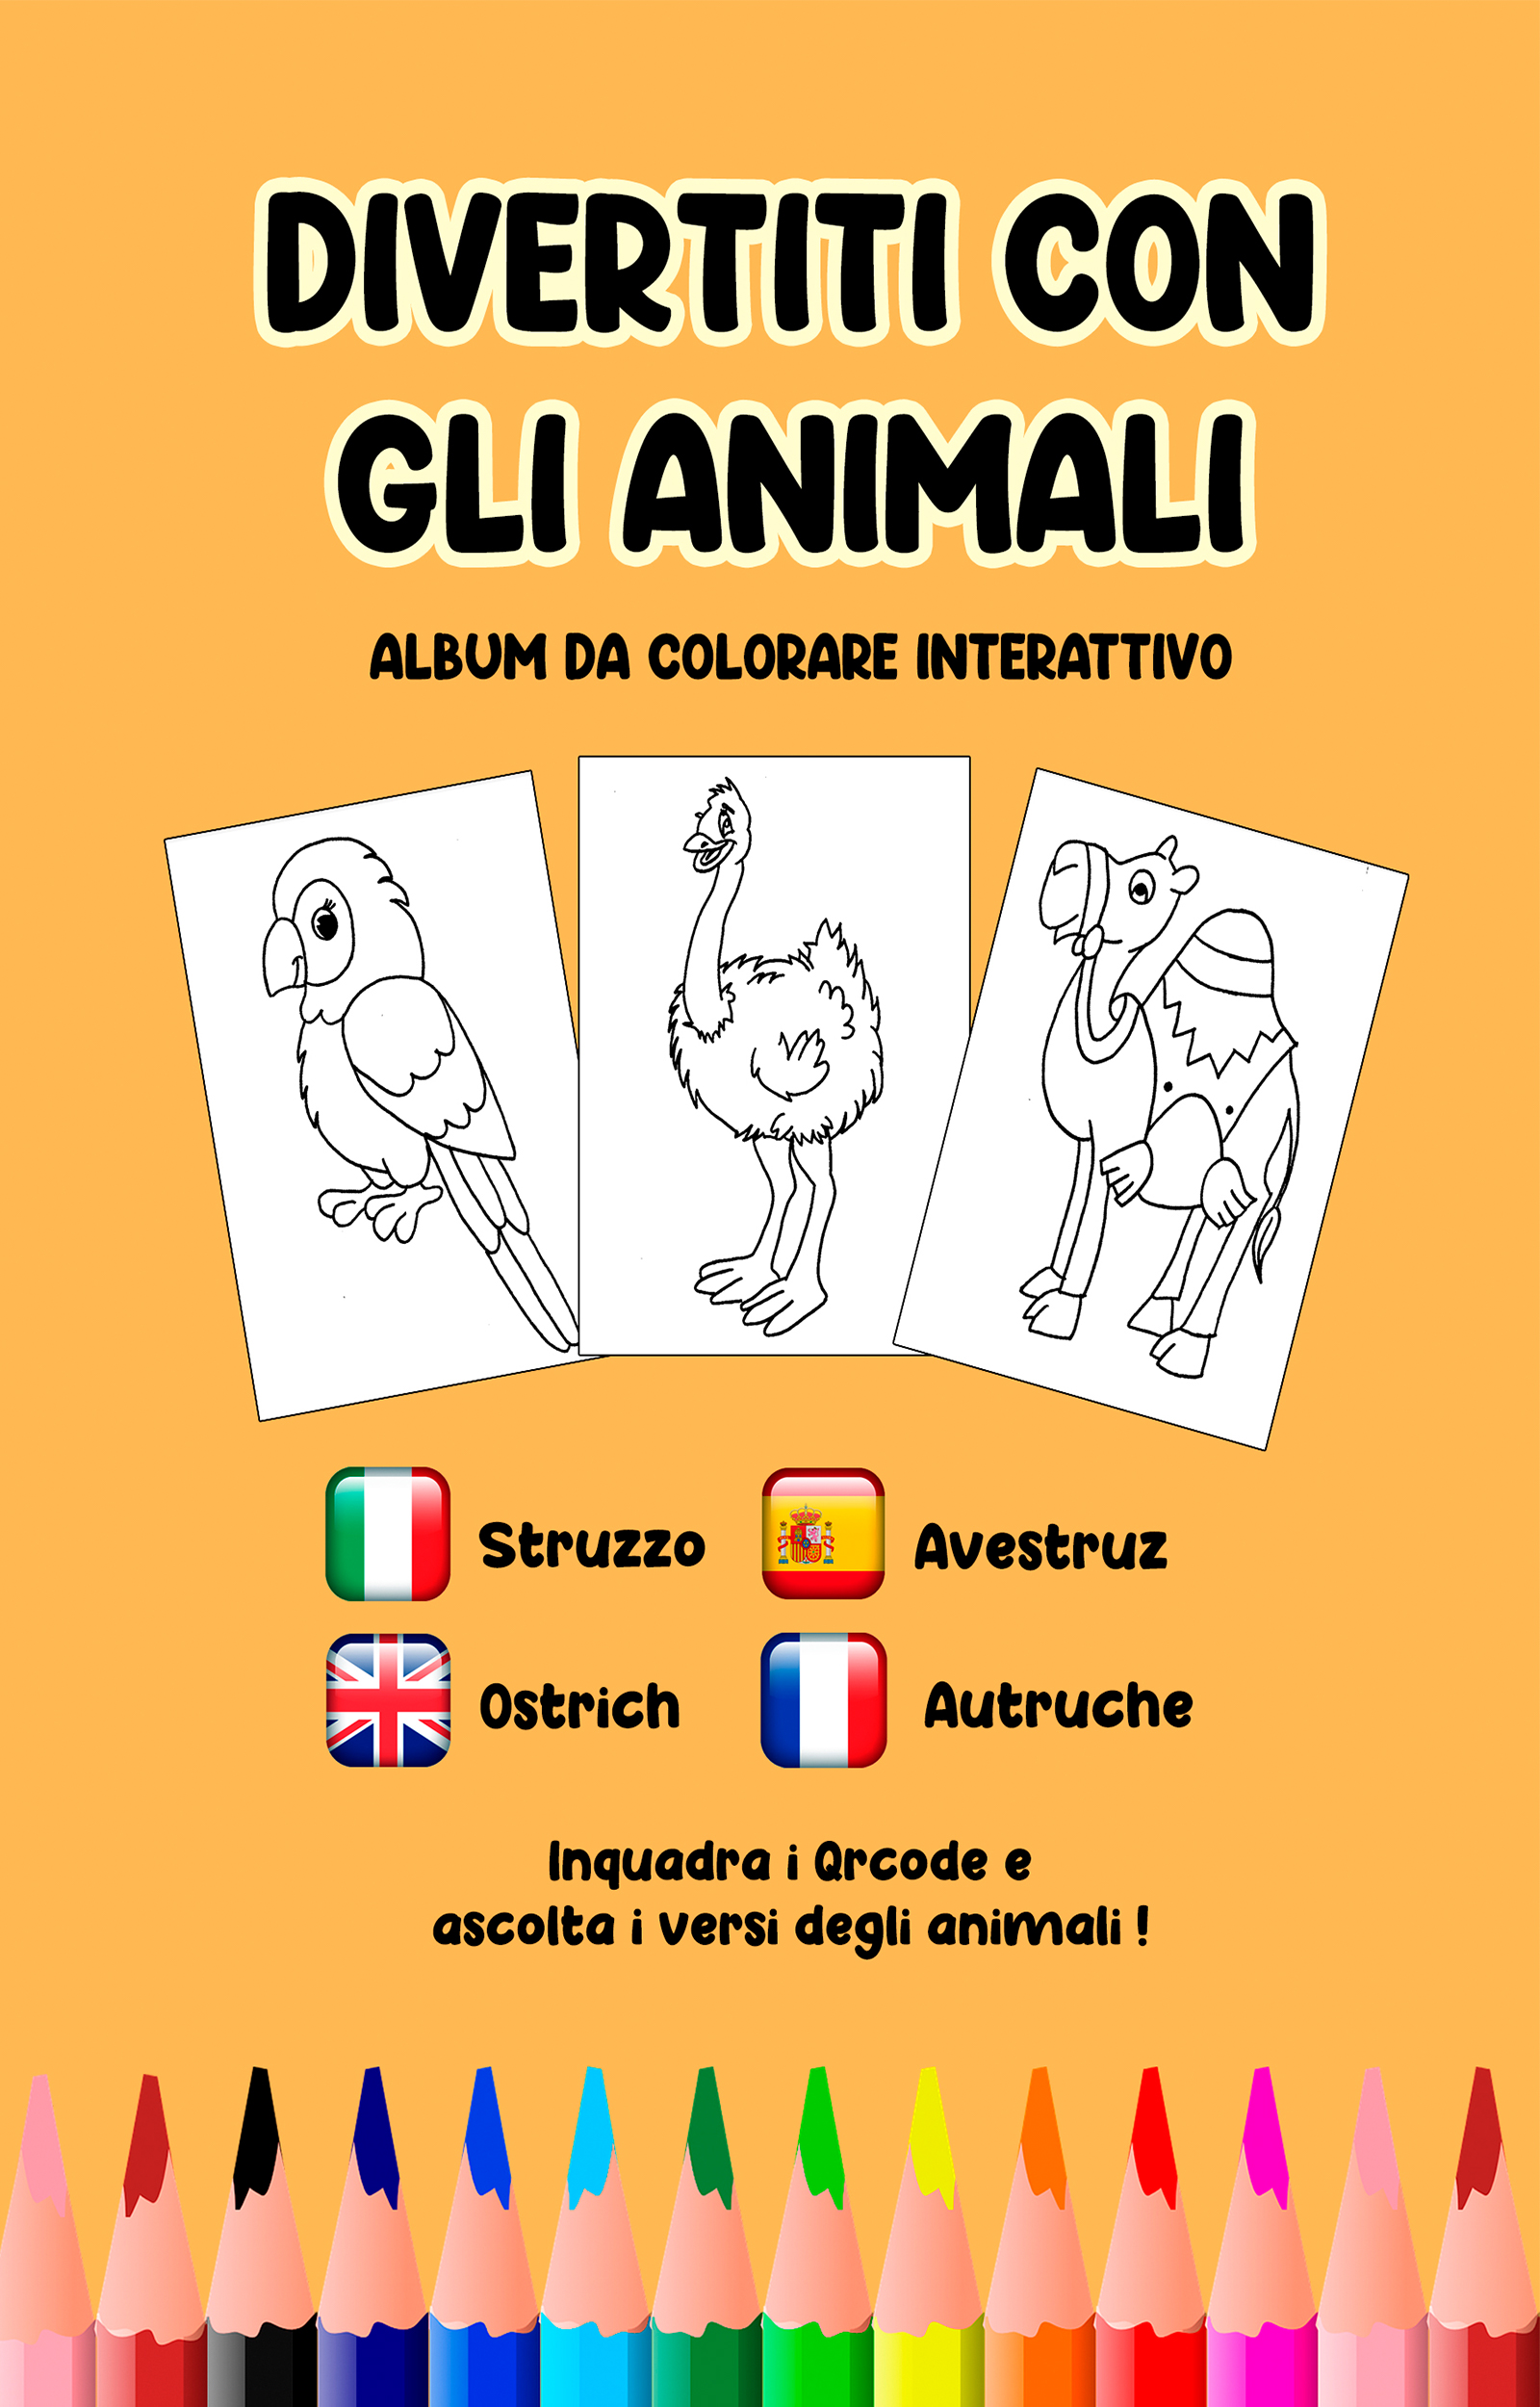 Divertiti con gli animali